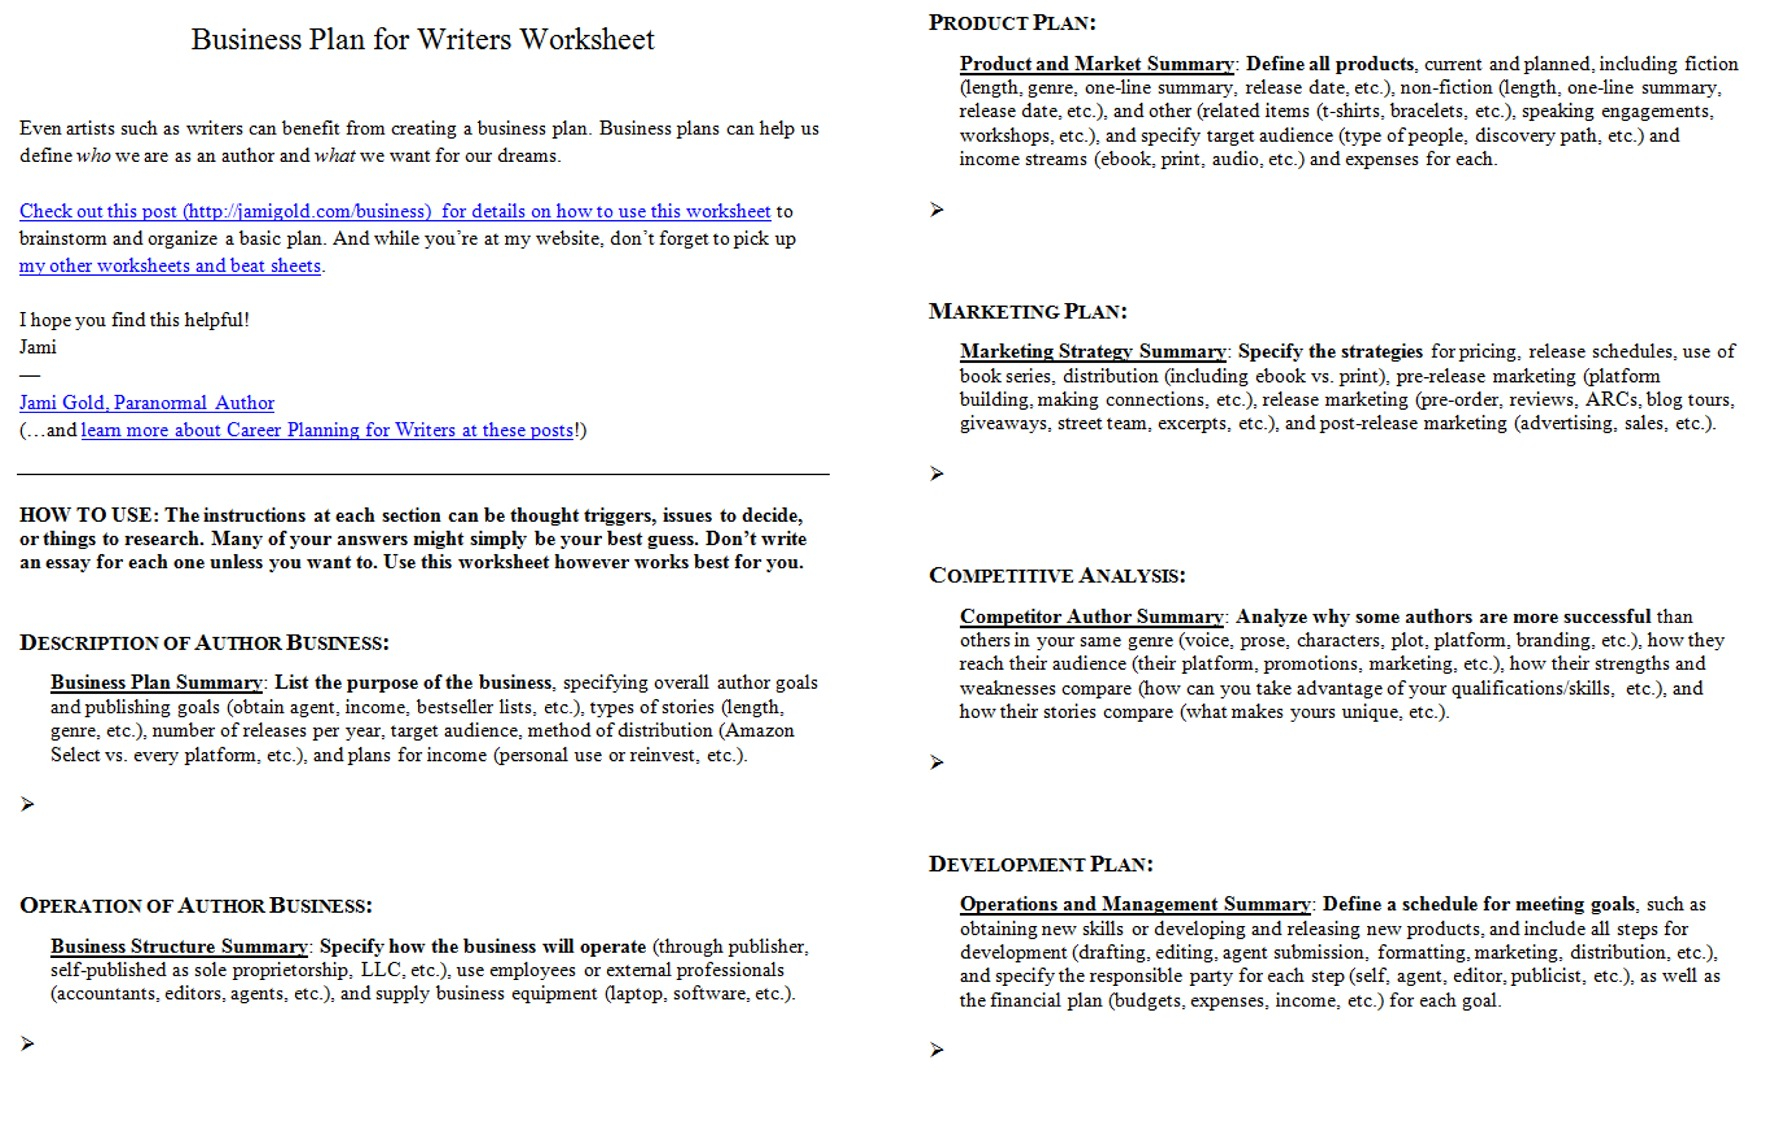 Proatmealus  Pretty Worksheets For Writers  Jami Gold Paranormal Author With Exquisite Screen Shot Of Both Pages Of The Business Plan For Writers Worksheet With Cool Free Fractions Worksheet Also Possessive Nouns Worksheets For Grade  In Addition  Single Digit Addition Worksheets And Grade  Free Worksheets As Well As Rounding  Digit Numbers Worksheets Additionally Wizard Of Oz Questions Worksheet From Jamigoldcom With Proatmealus  Exquisite Worksheets For Writers  Jami Gold Paranormal Author With Cool Screen Shot Of Both Pages Of The Business Plan For Writers Worksheet And Pretty Free Fractions Worksheet Also Possessive Nouns Worksheets For Grade  In Addition  Single Digit Addition Worksheets From Jamigoldcom